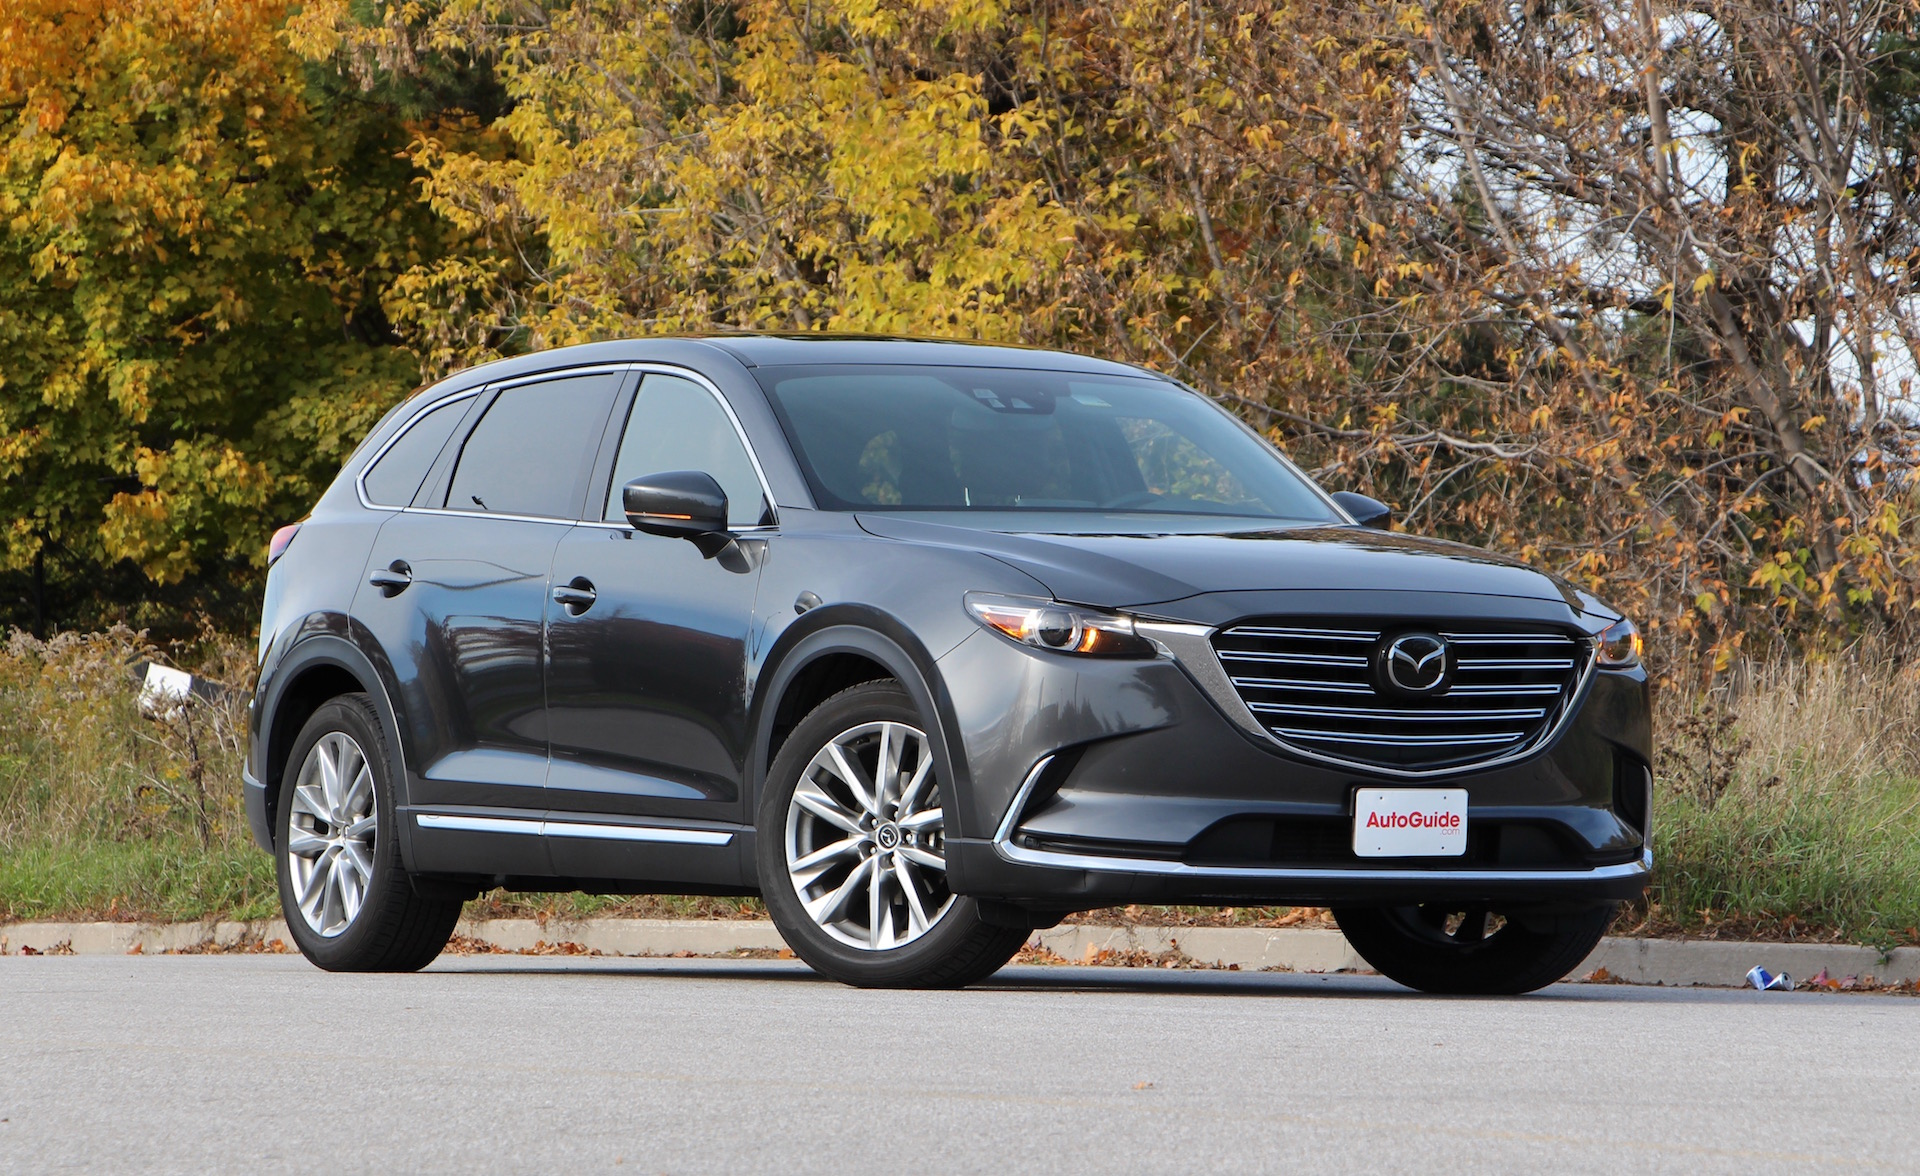 front three review test turn signature first cx awd quarter cars mazda